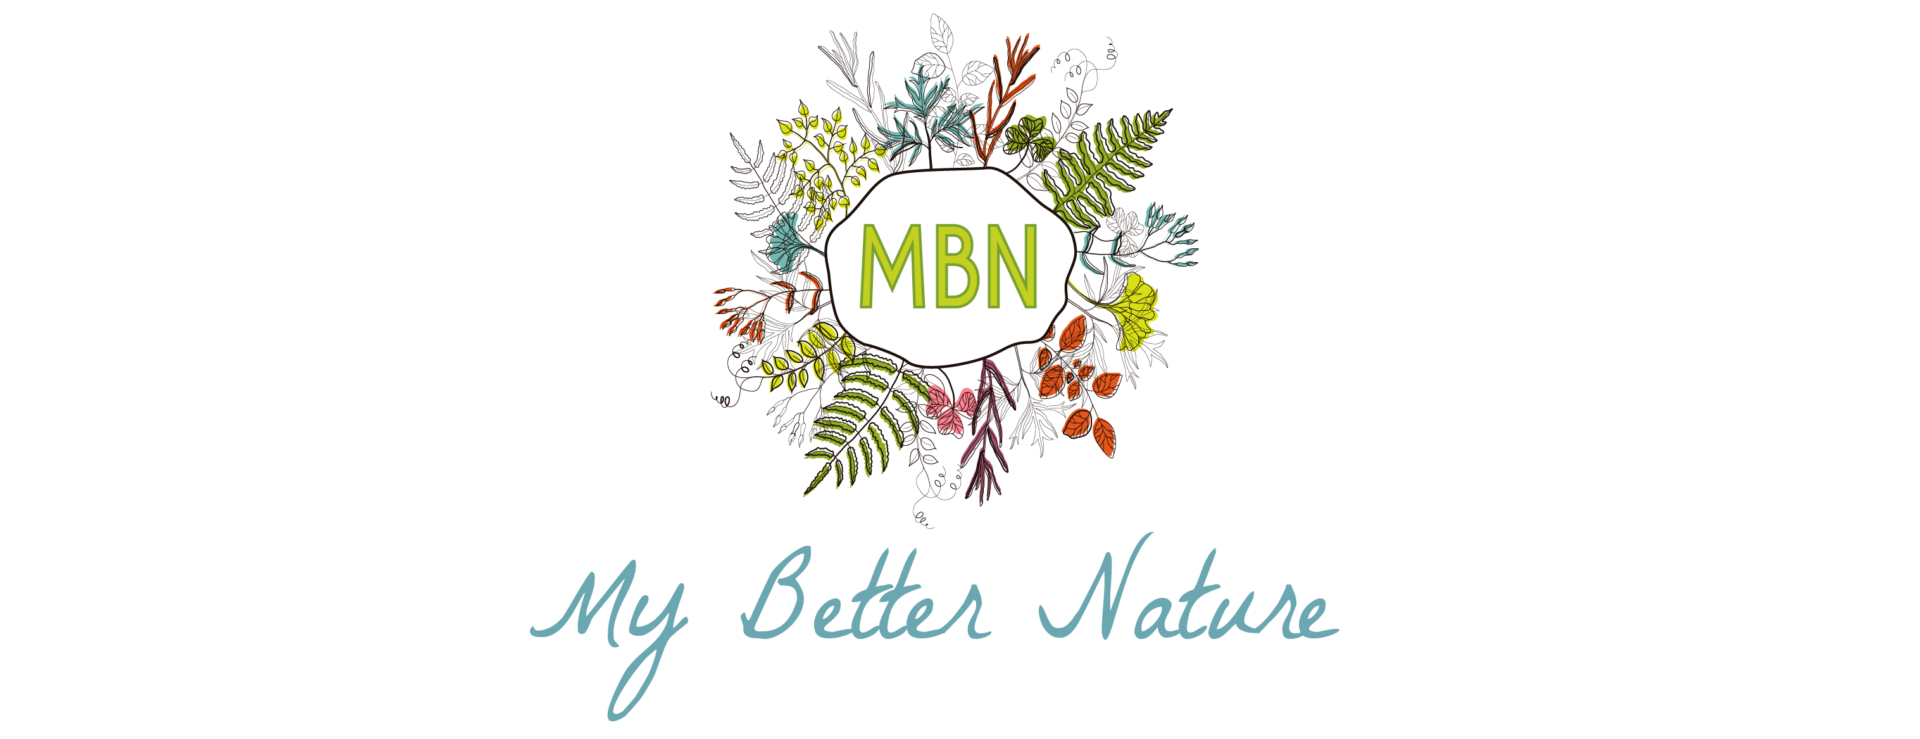 My Better Nature